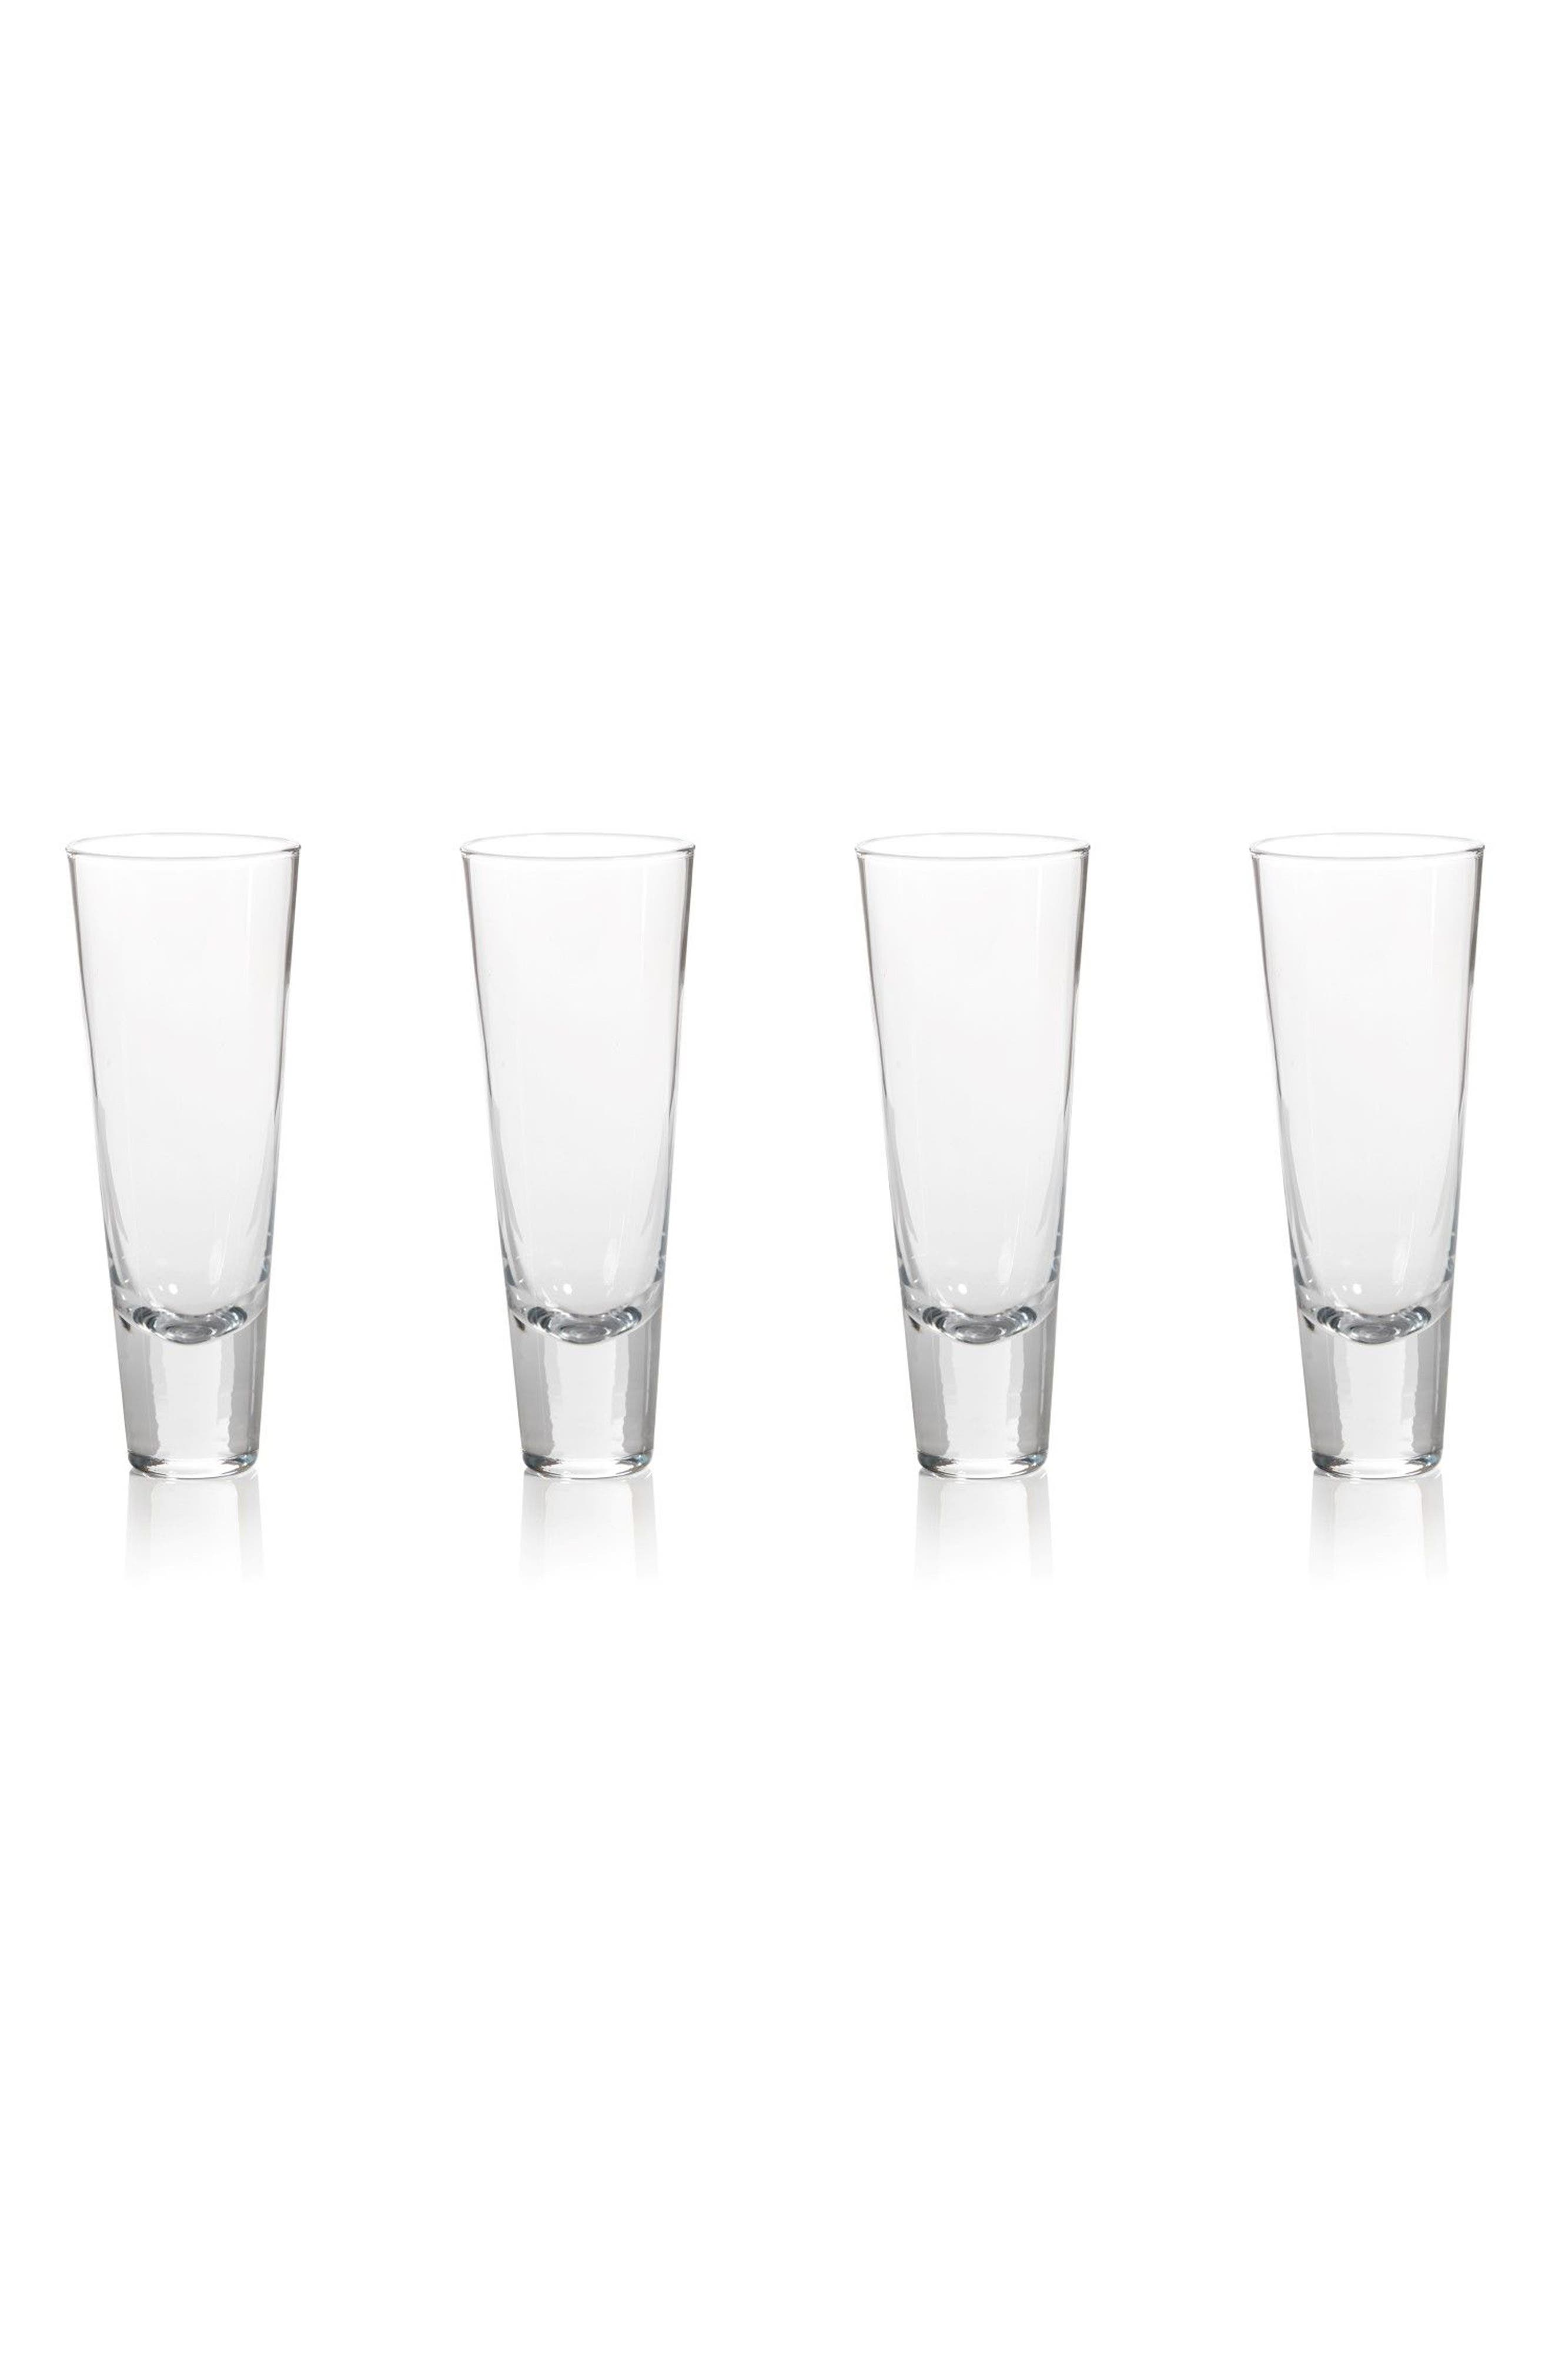 Anatole Set of 4 Tapered Glasses,                         Main,                         color, Clear